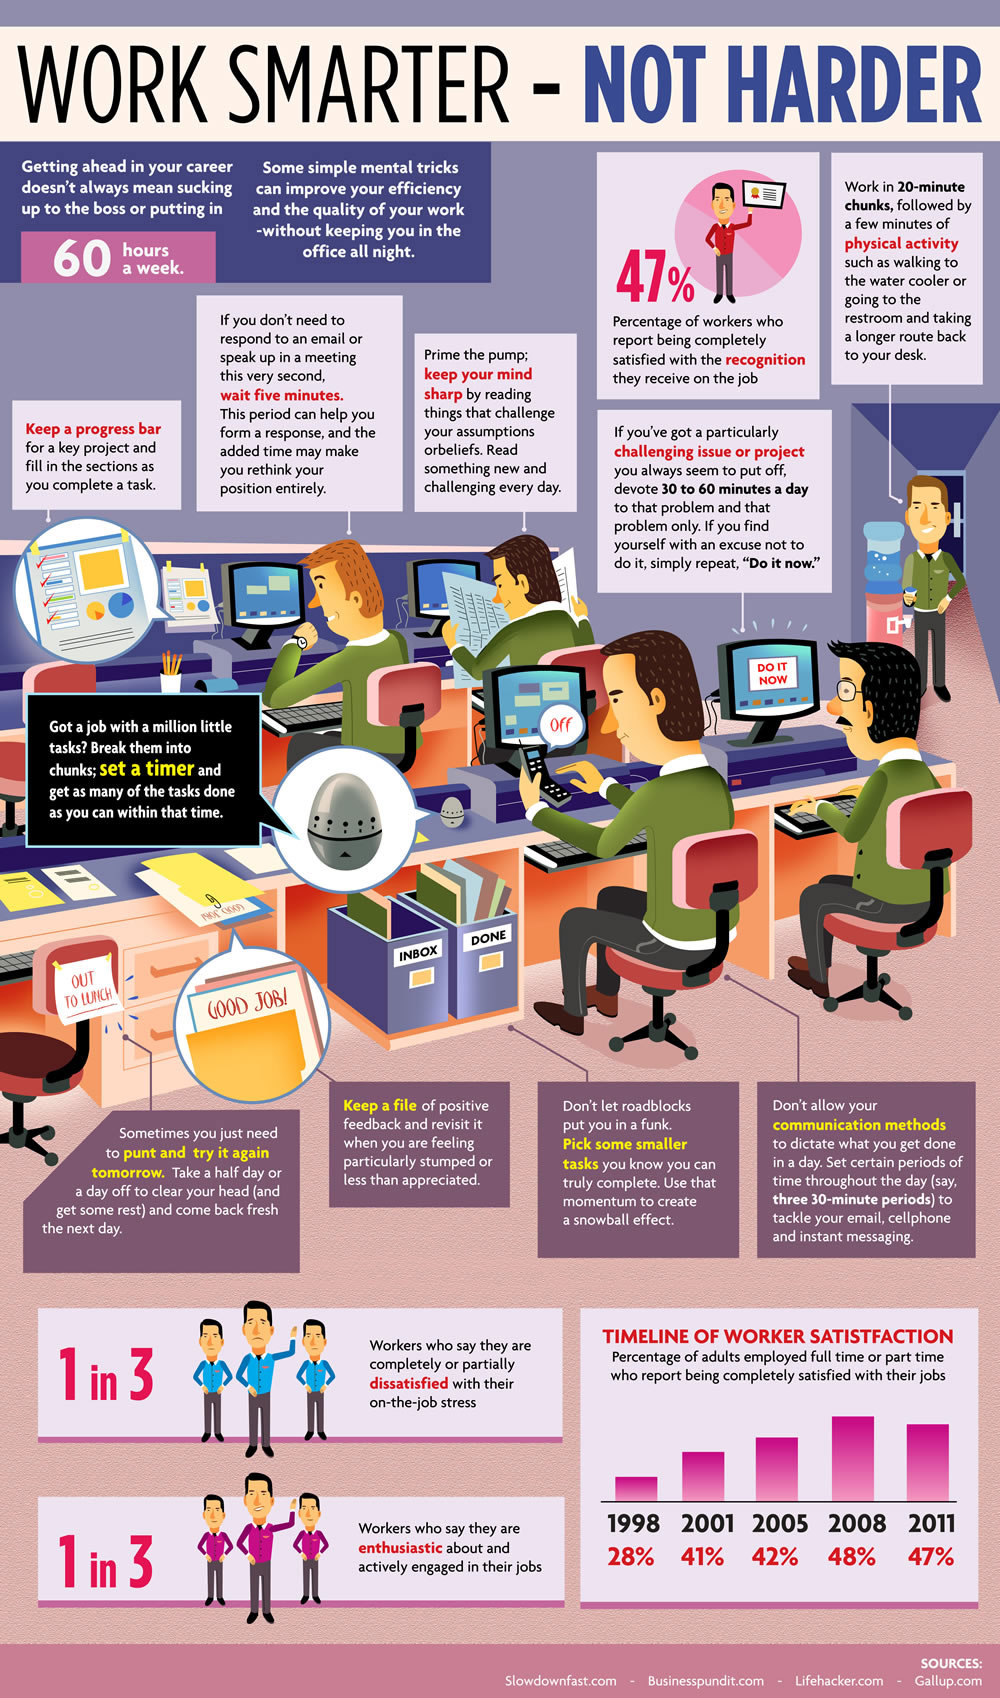 Work Smarter Not harder infographic